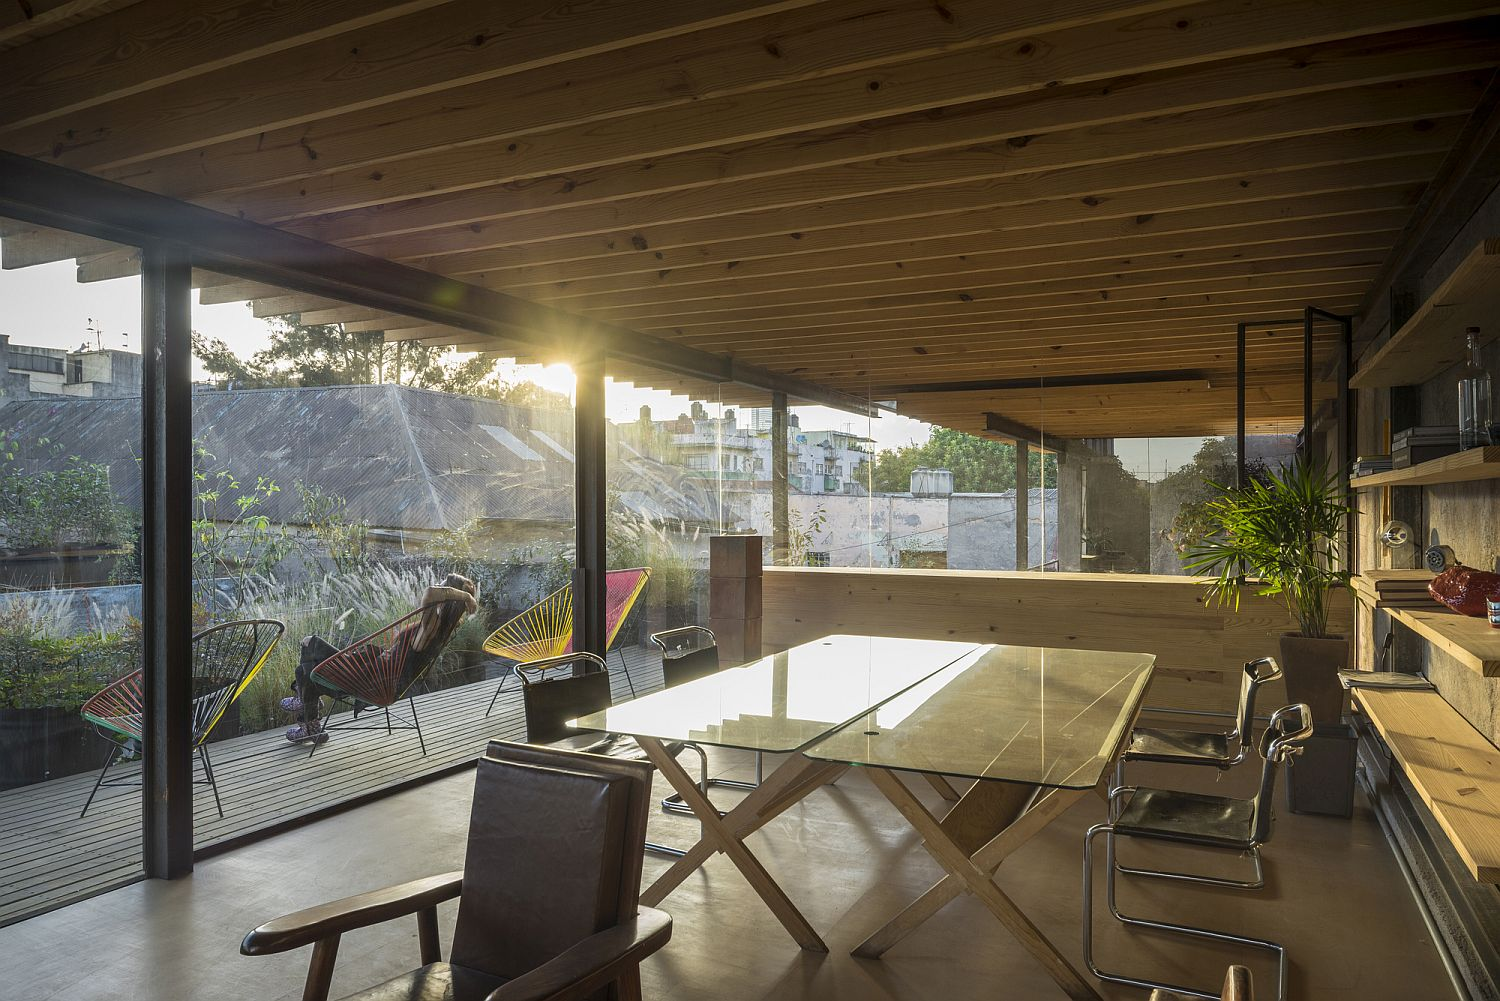 Renovated house in Mexico turned into art gallery, workshop and office space